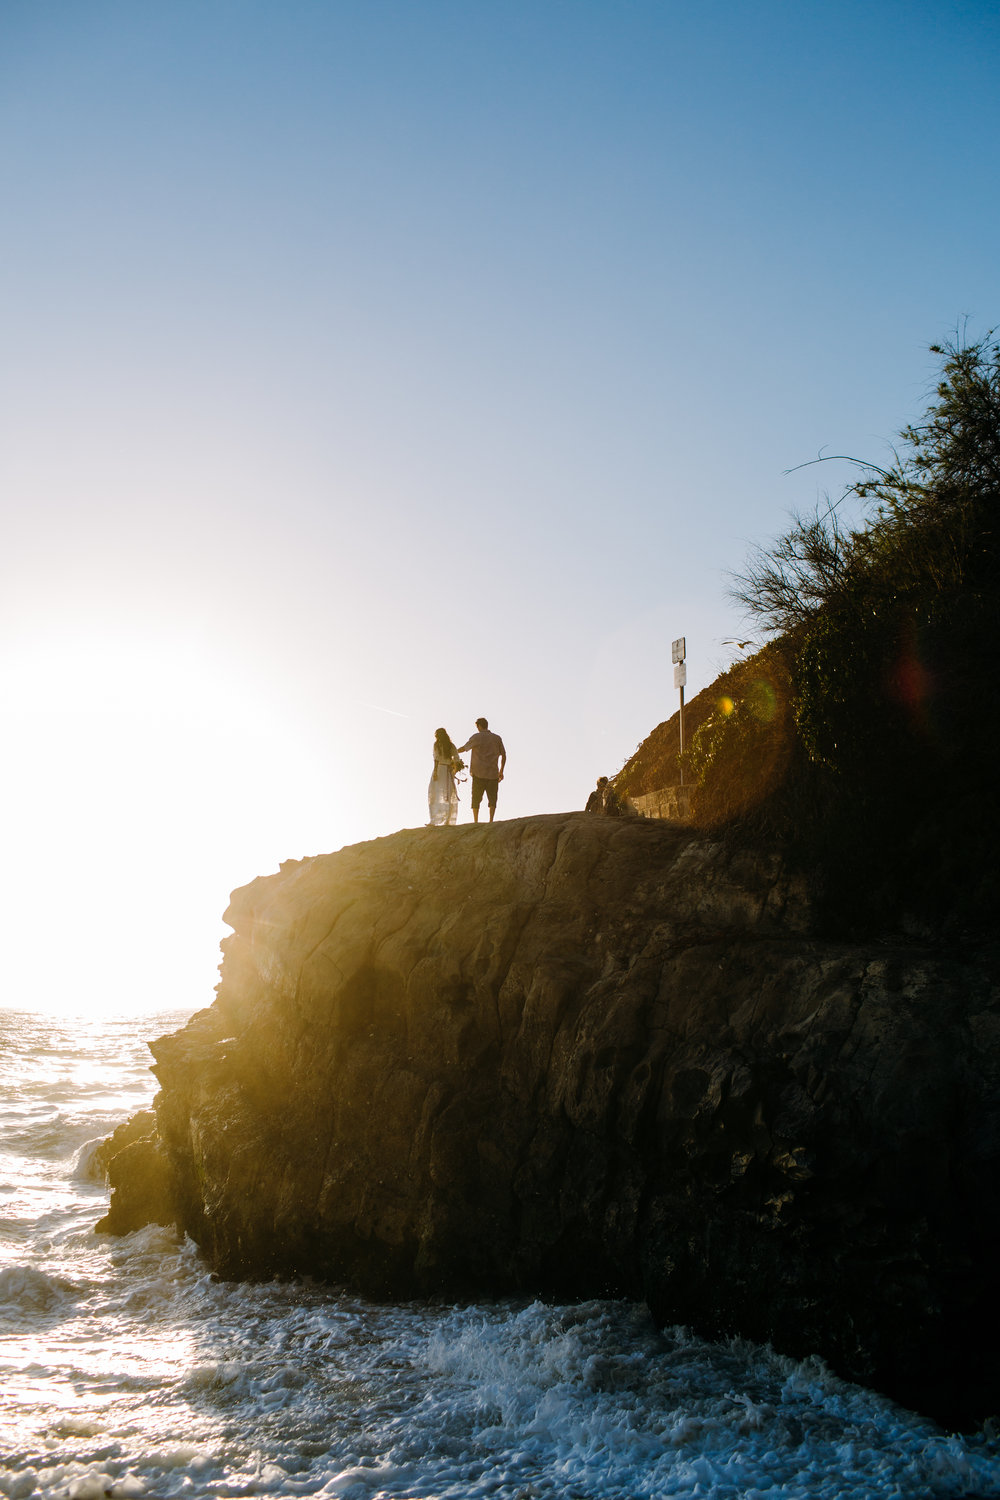 KaraNixonWeddings-LagunaBeach-Tablerock-Elopement-55.jpg